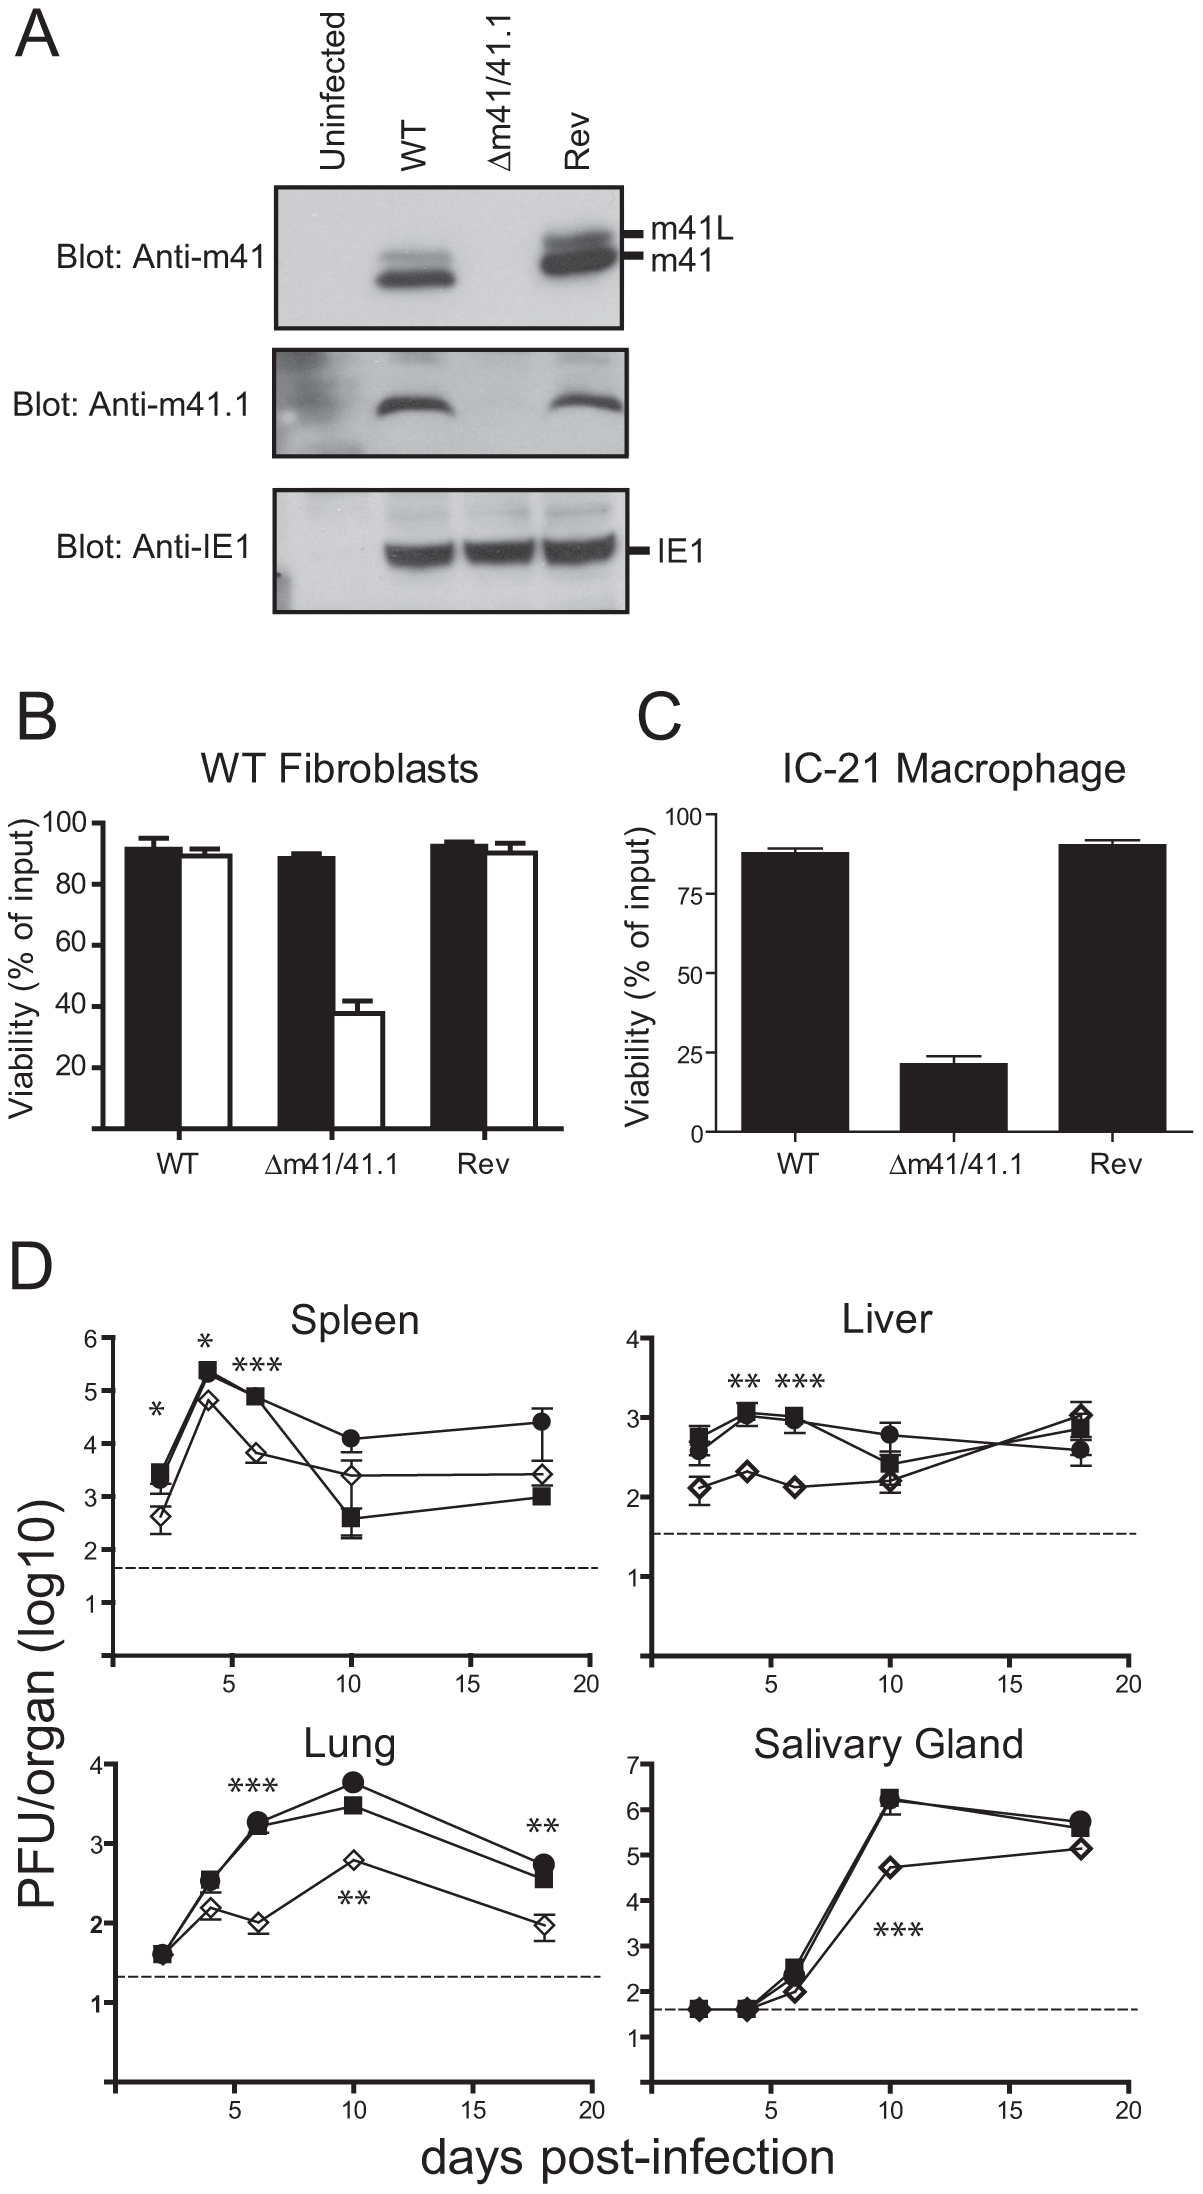 Mutation of the m41 ORF inhibits viral replication.